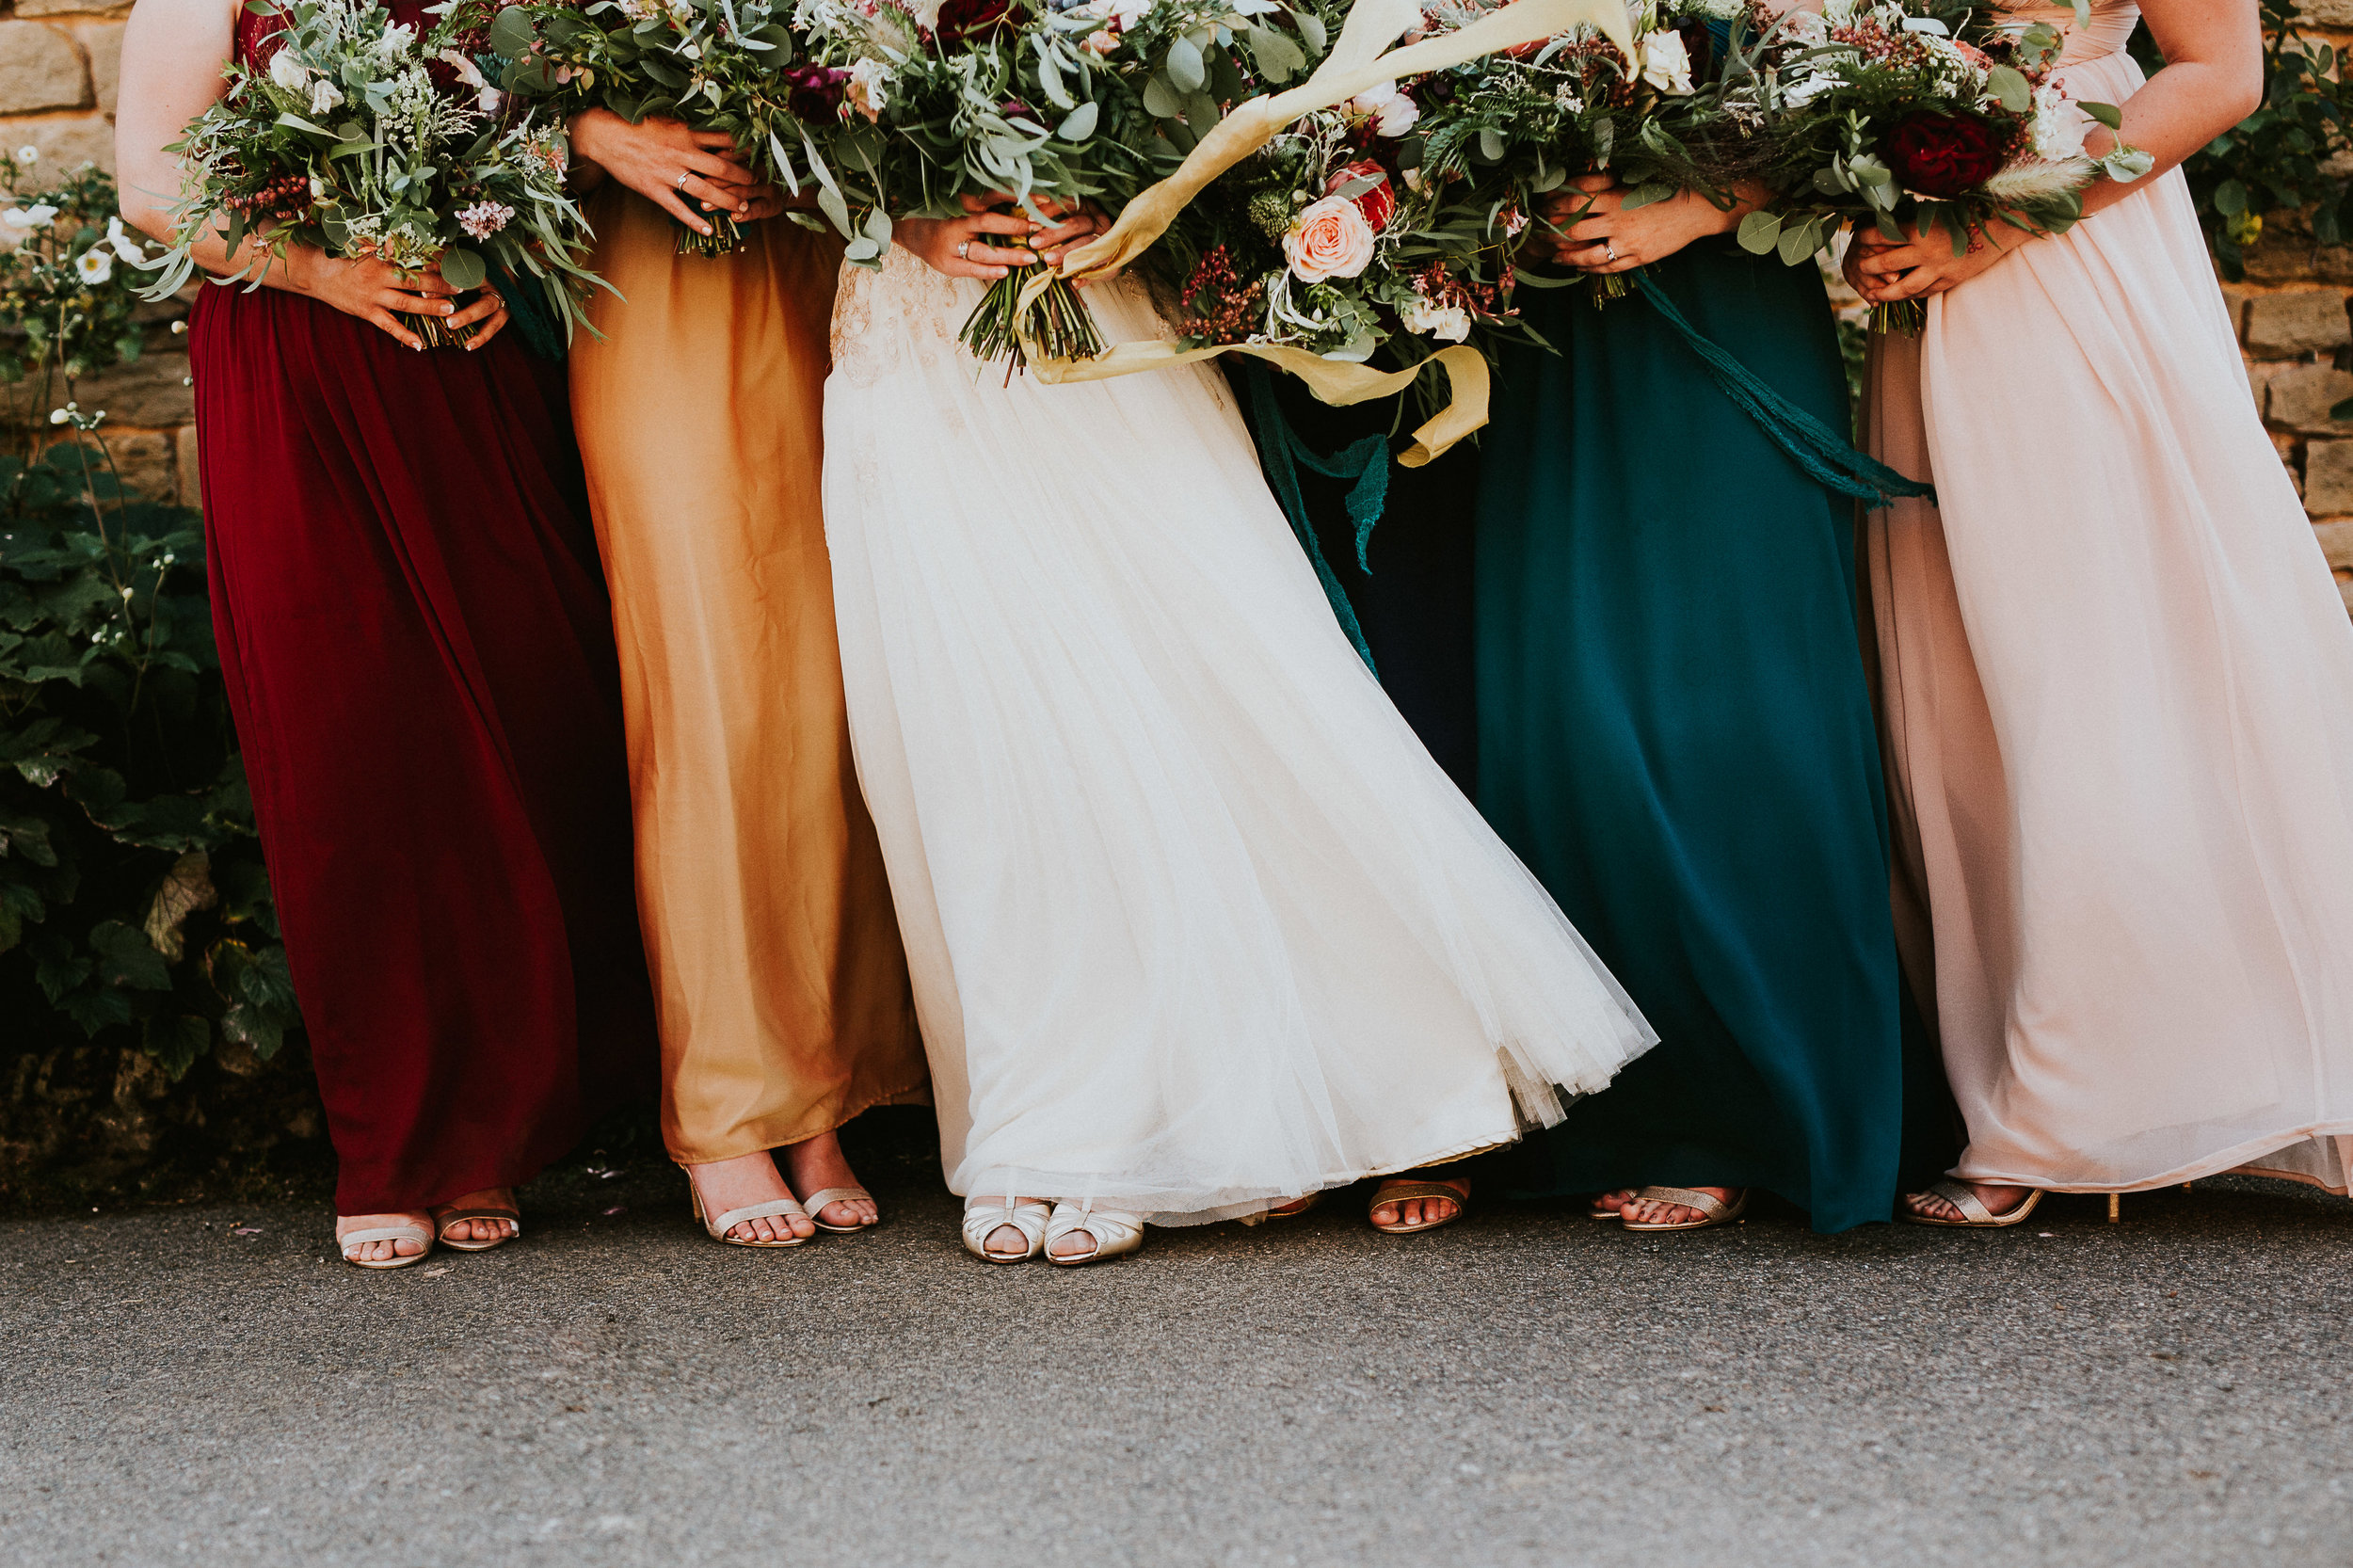 Colourful bridesmaids dresses with rustic woodland bouquets